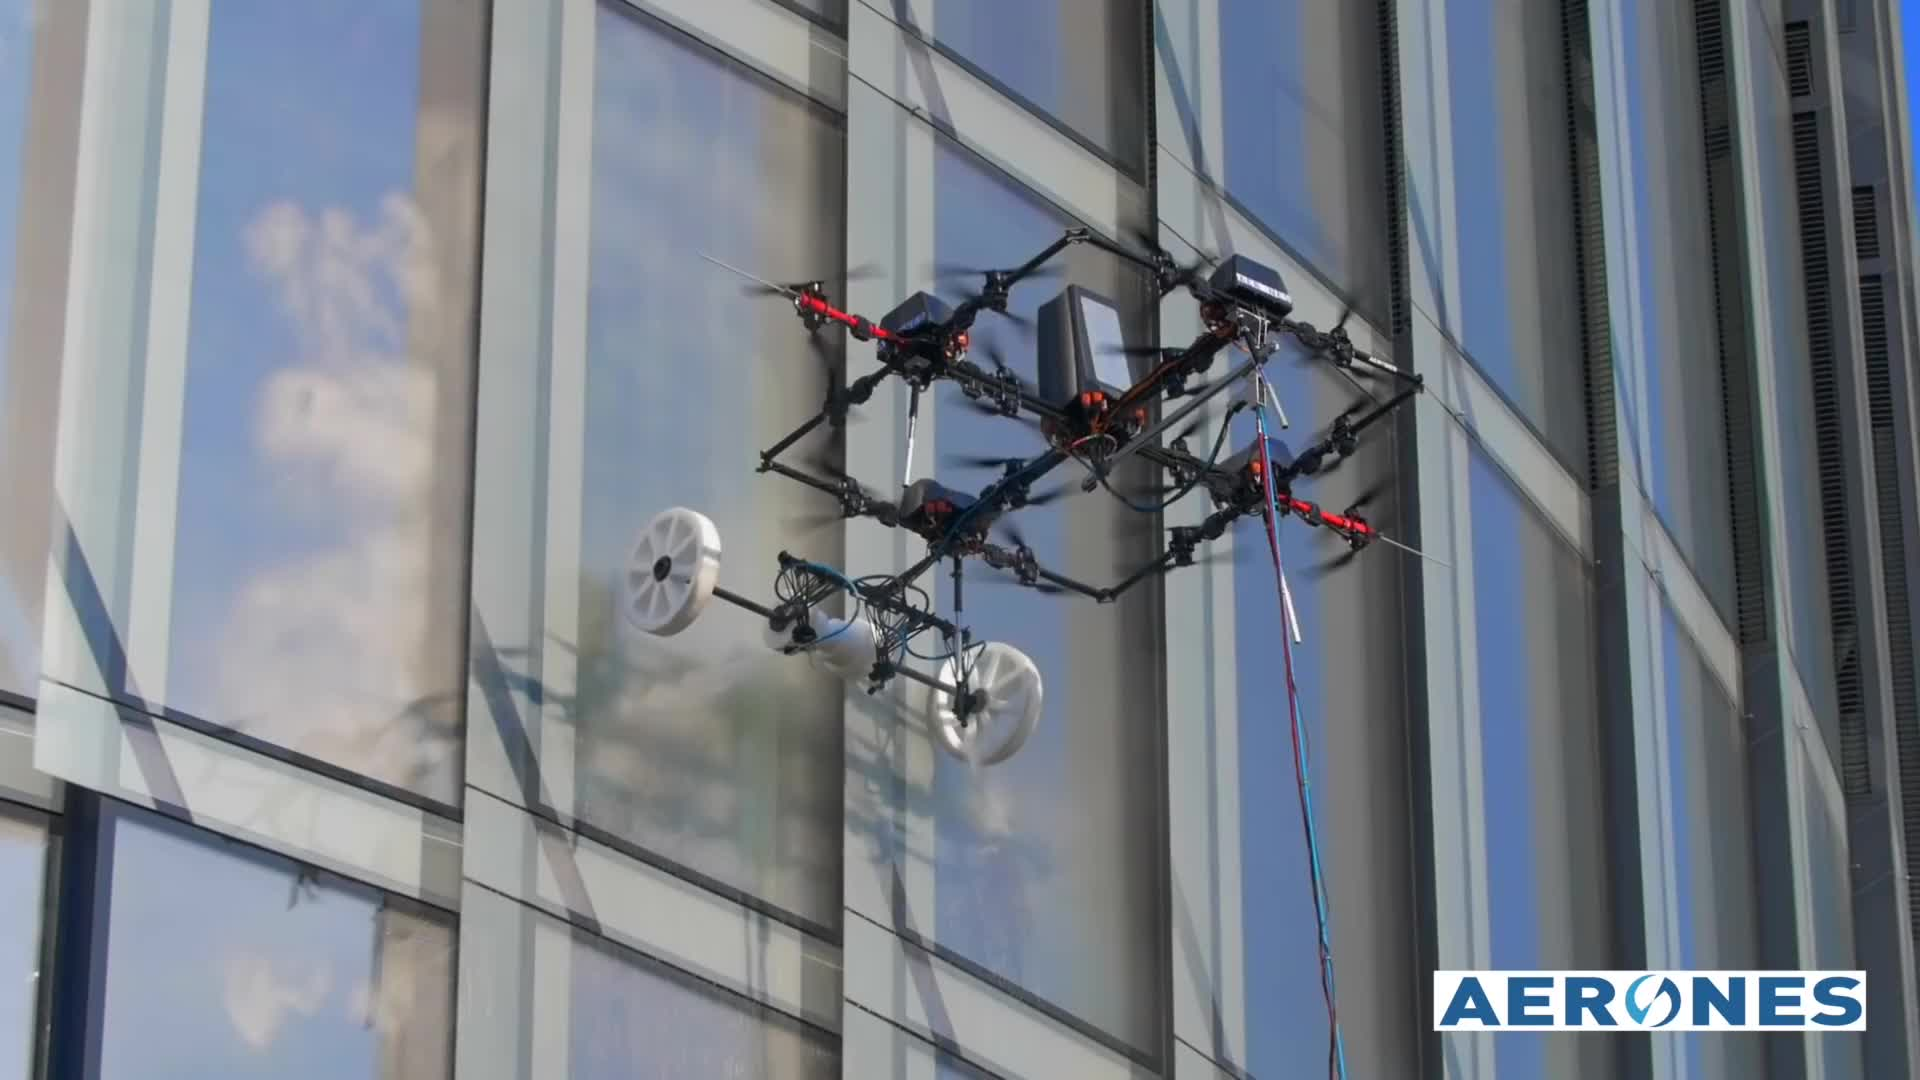 Aerones, Science & Technology, Aerones Drone for High-Altitude Building Cleaning GIFs